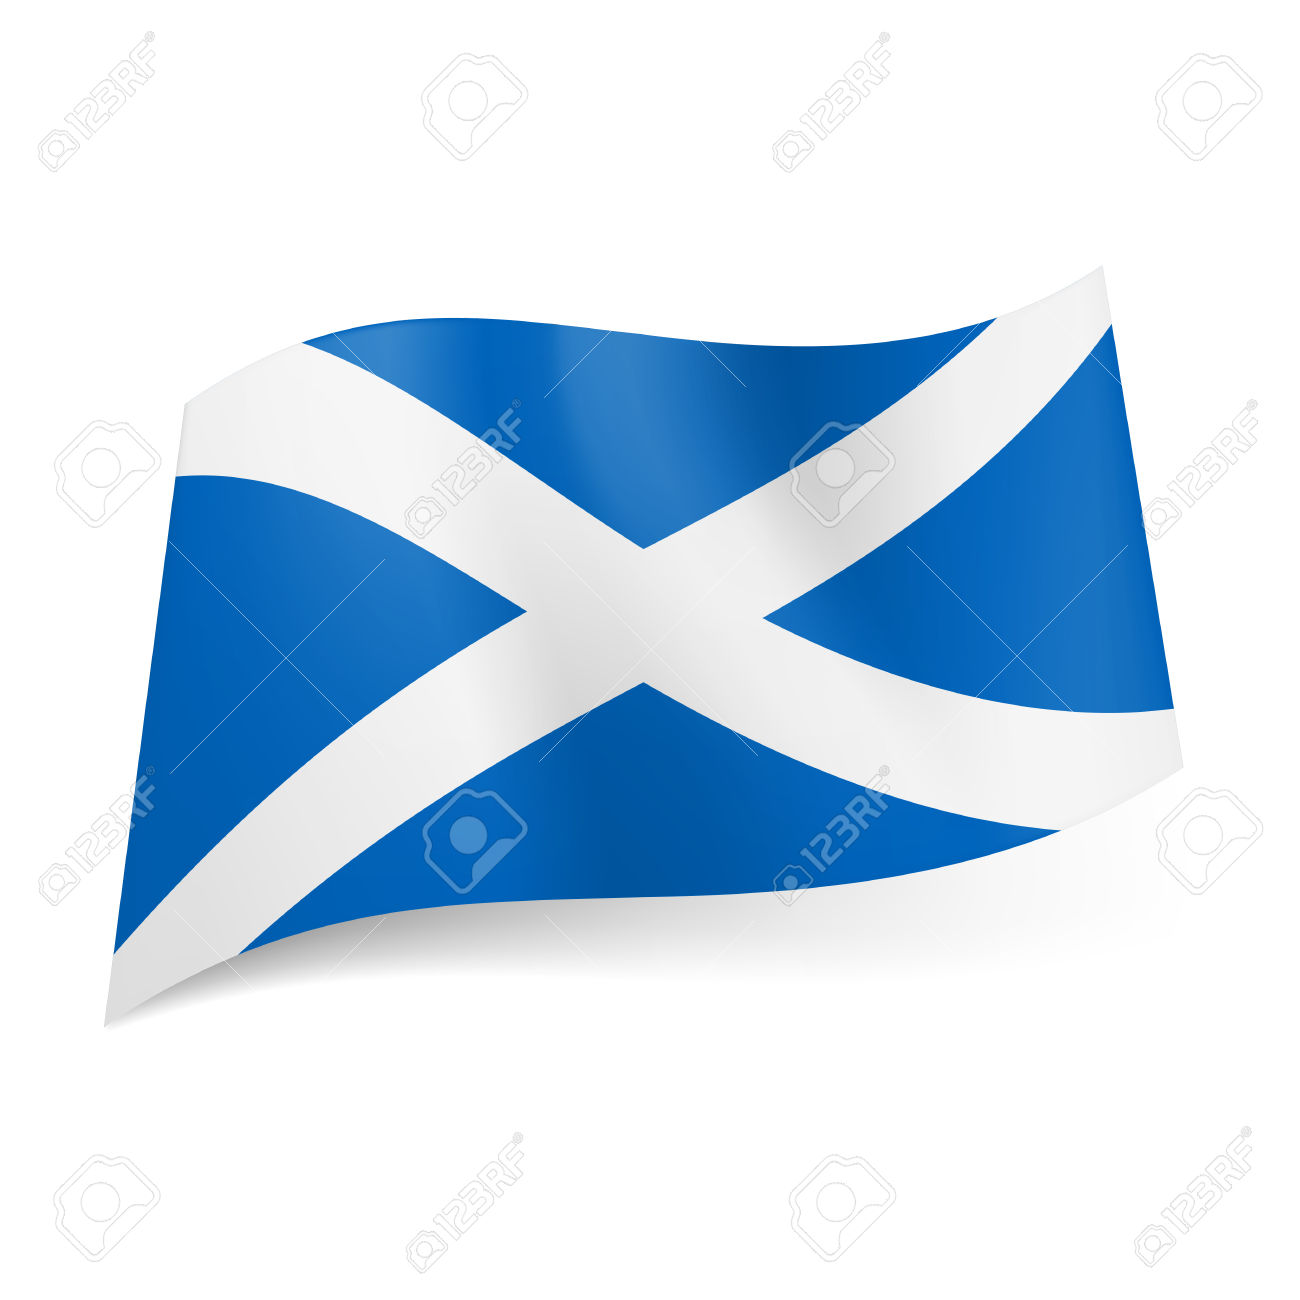 National Flag Of Scotland: White Cross On Blue Background. Royalty.